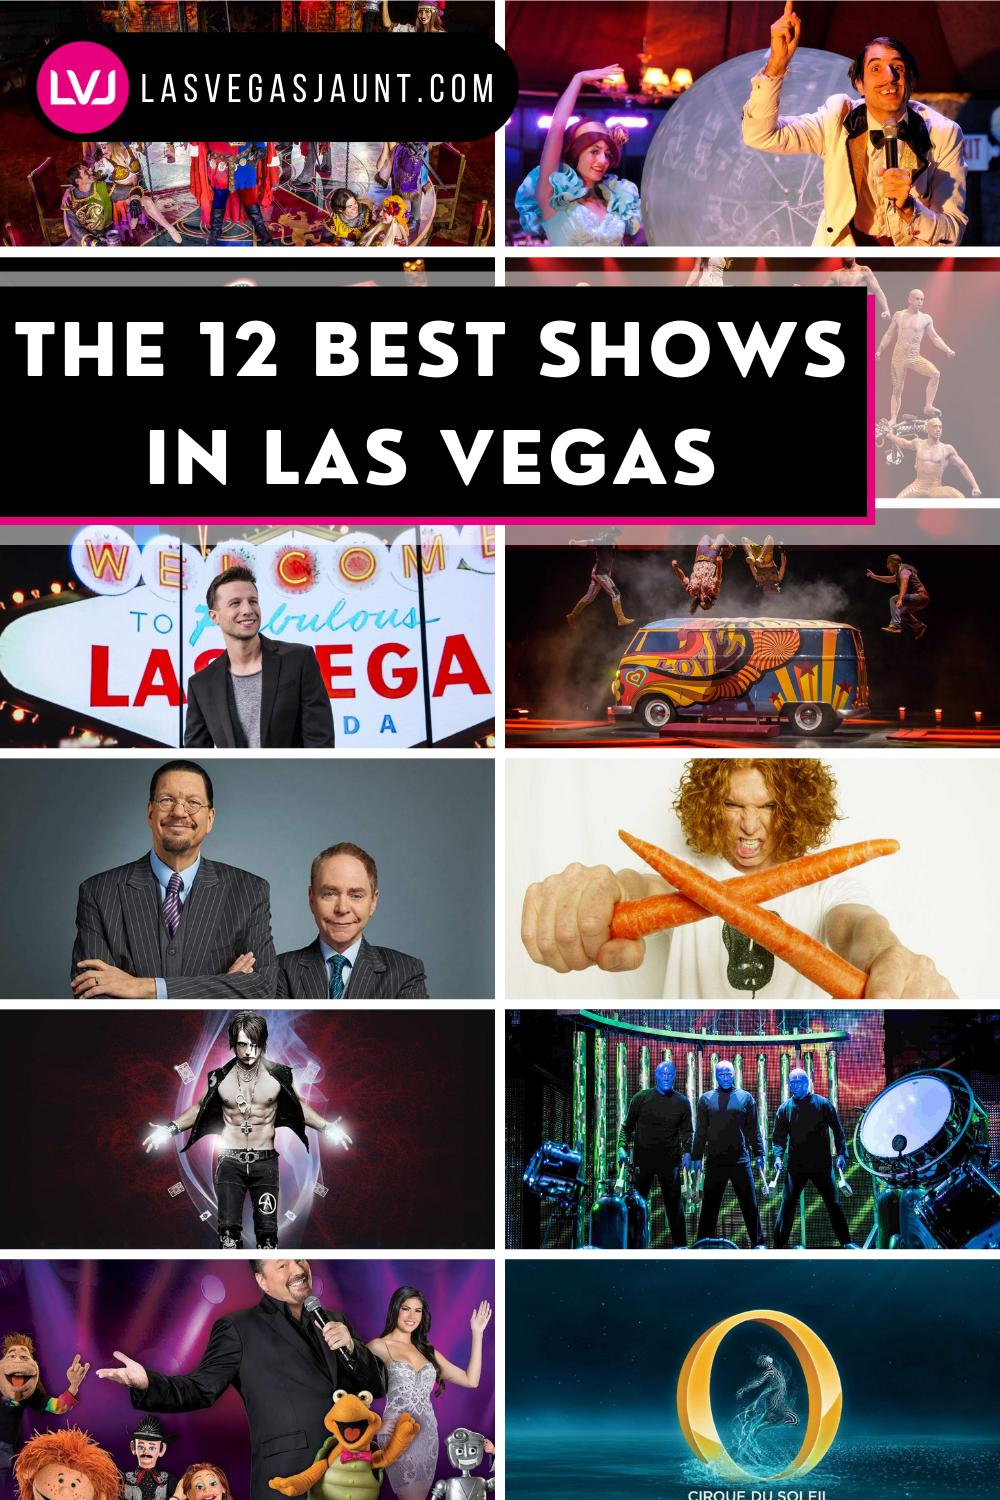 The 12 Best Shows in Las Vegas